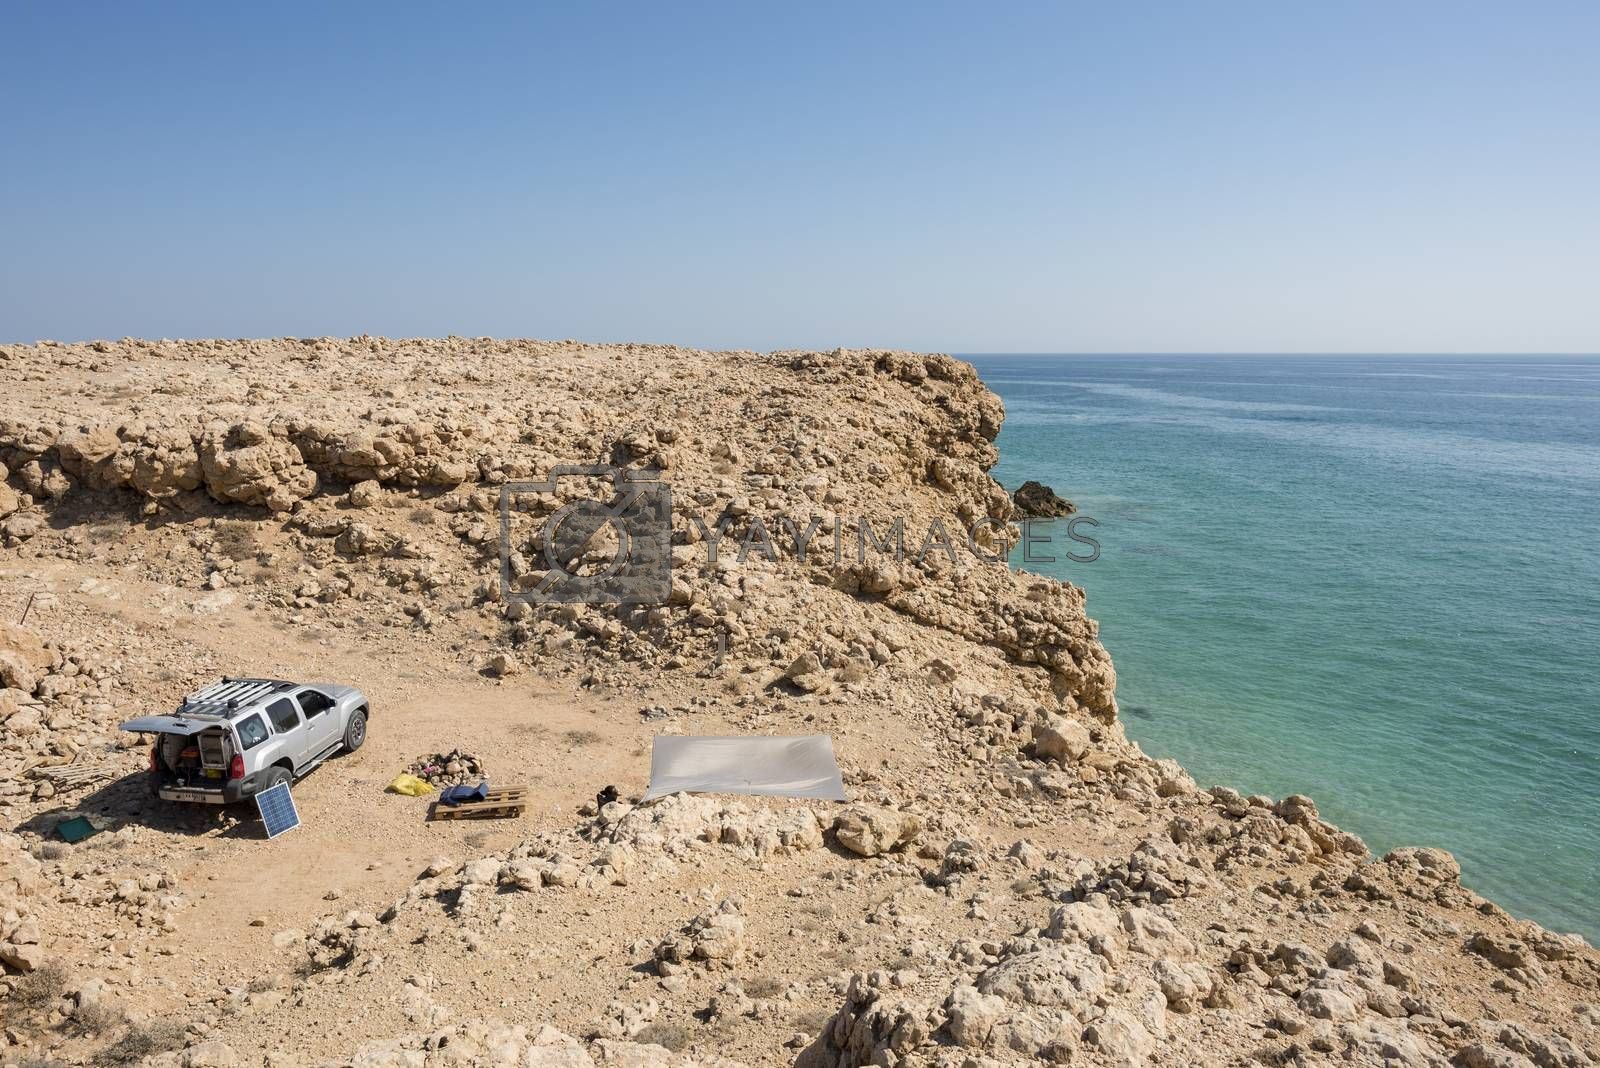 4x4 vehicle with solar panel in the wild coast of Ras Al Jinz, Sultanate of Oman. people camping in the nature with view on the ocean.